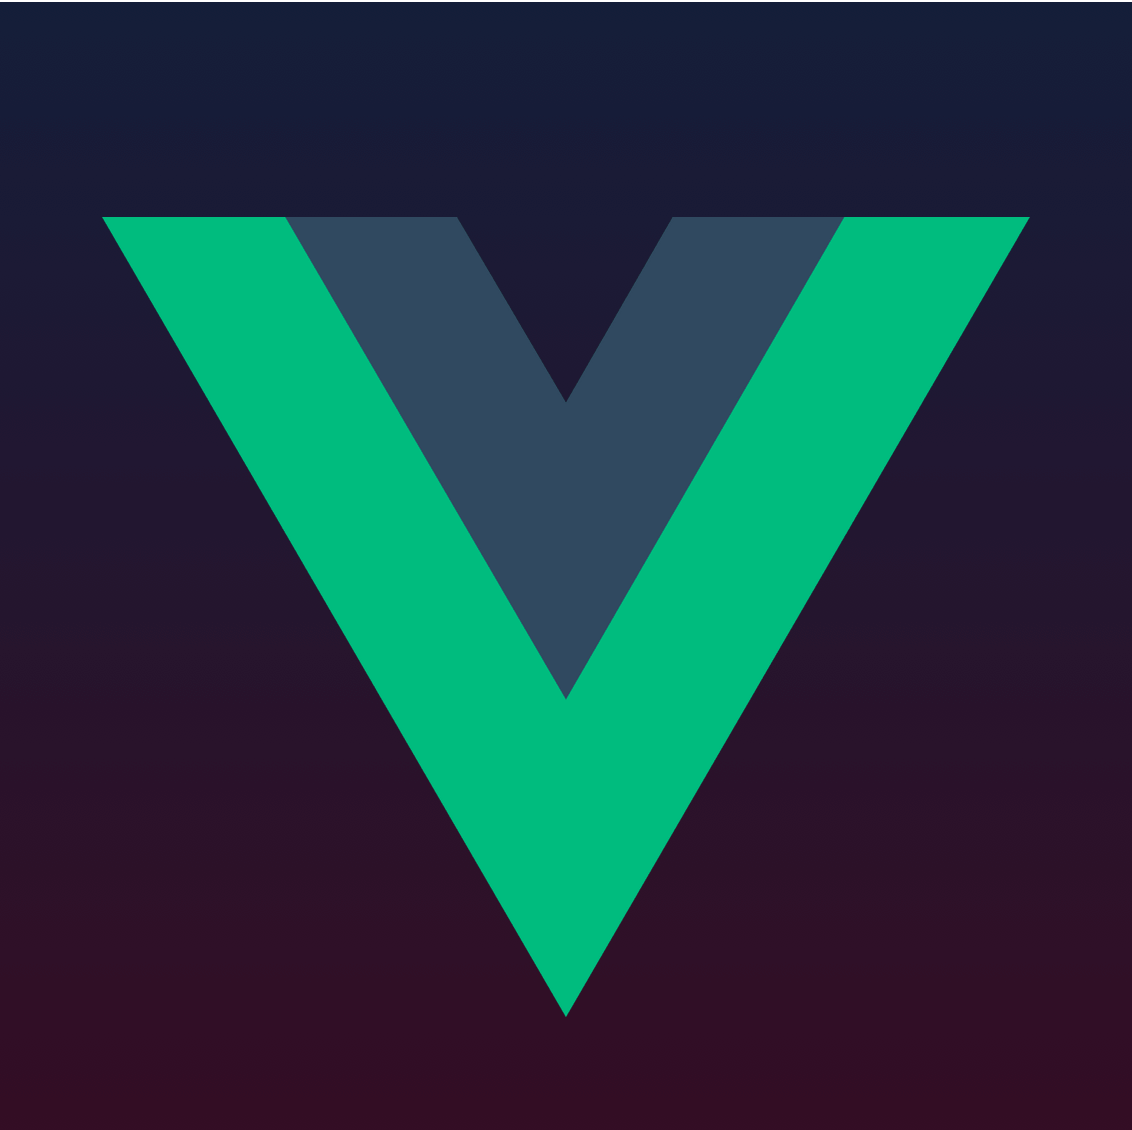 Tutorial - Build an Instagram clone with Vue js and CSSGram